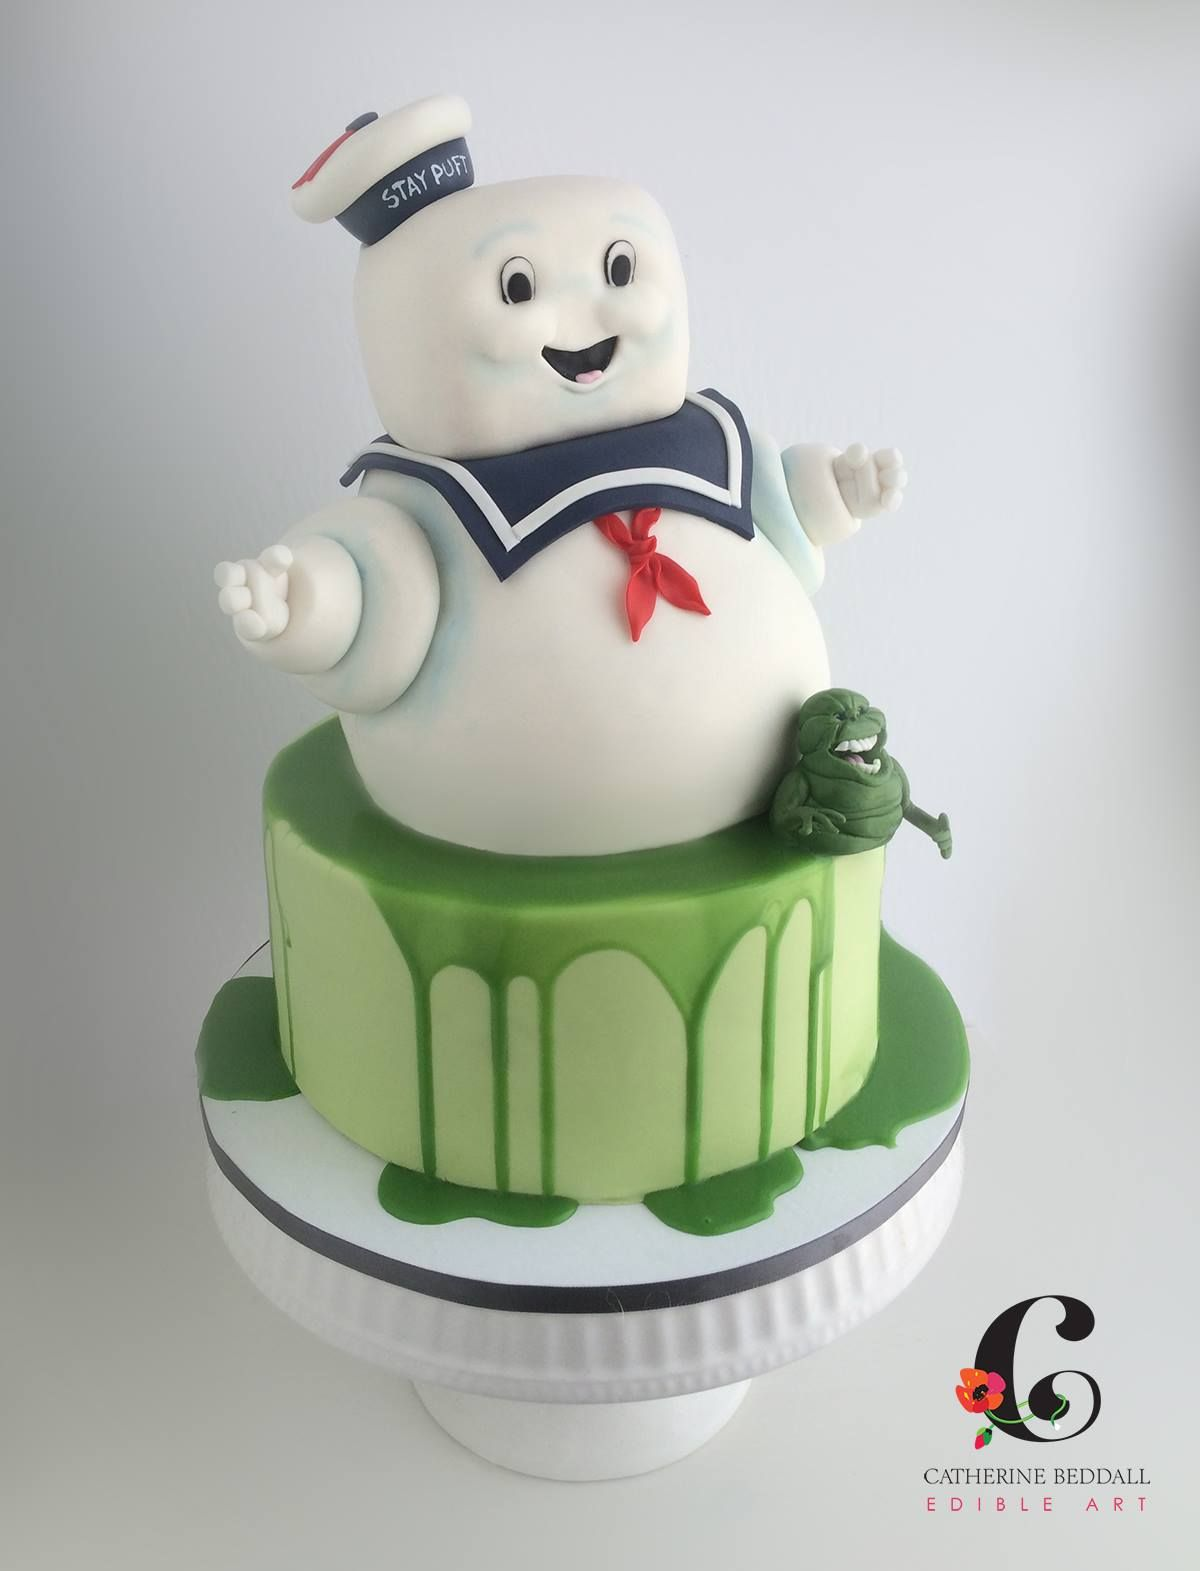 Catherine Beddall Edible Art Ghostbusters cake, Cake